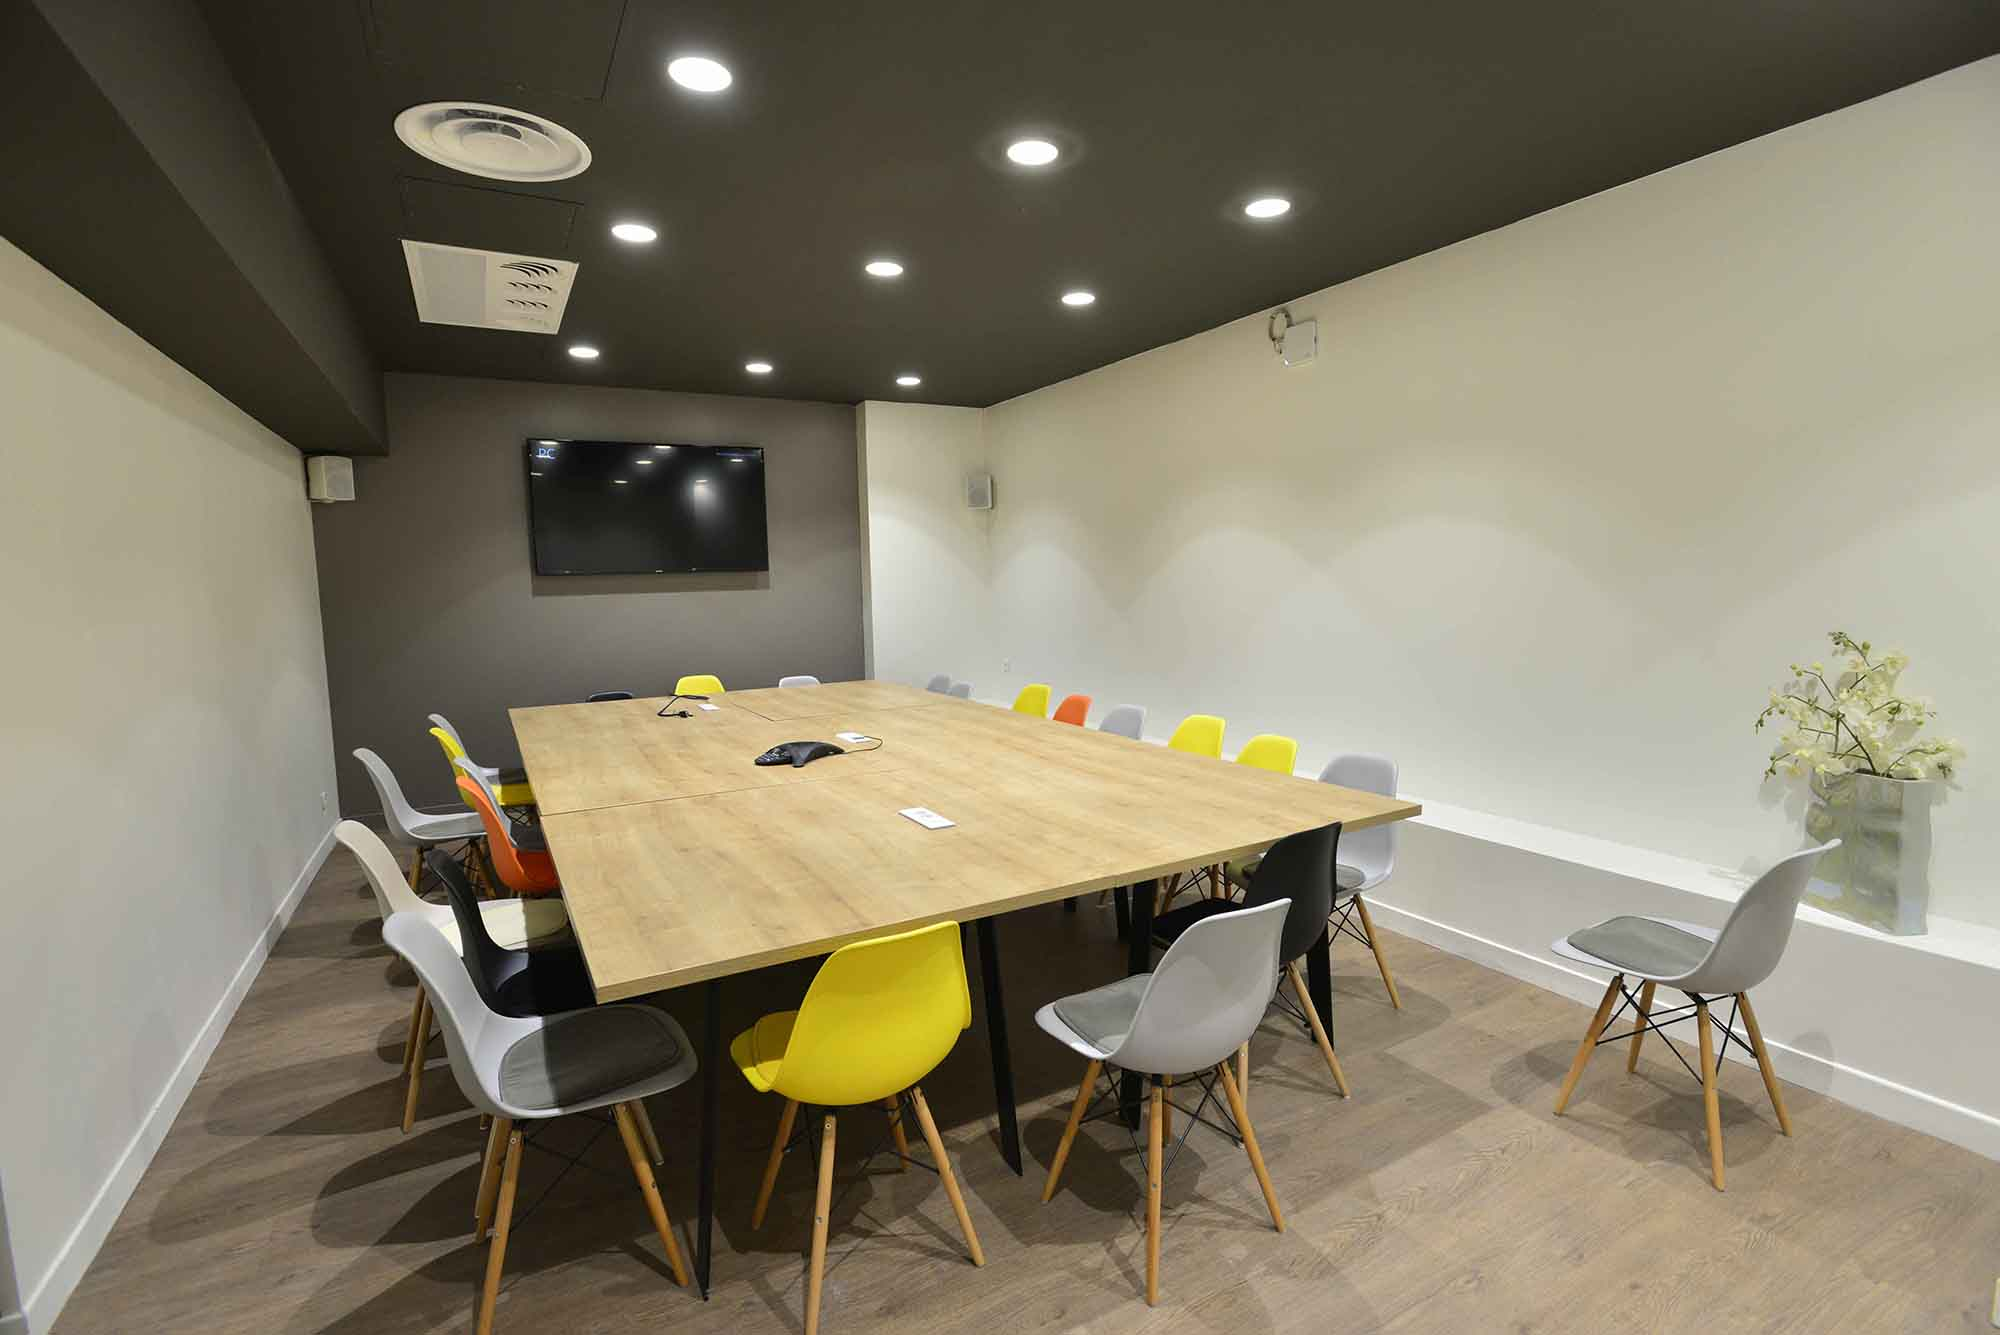 salle de r union pour 17 personnes situ e dans le centre de bordeaux. Black Bedroom Furniture Sets. Home Design Ideas